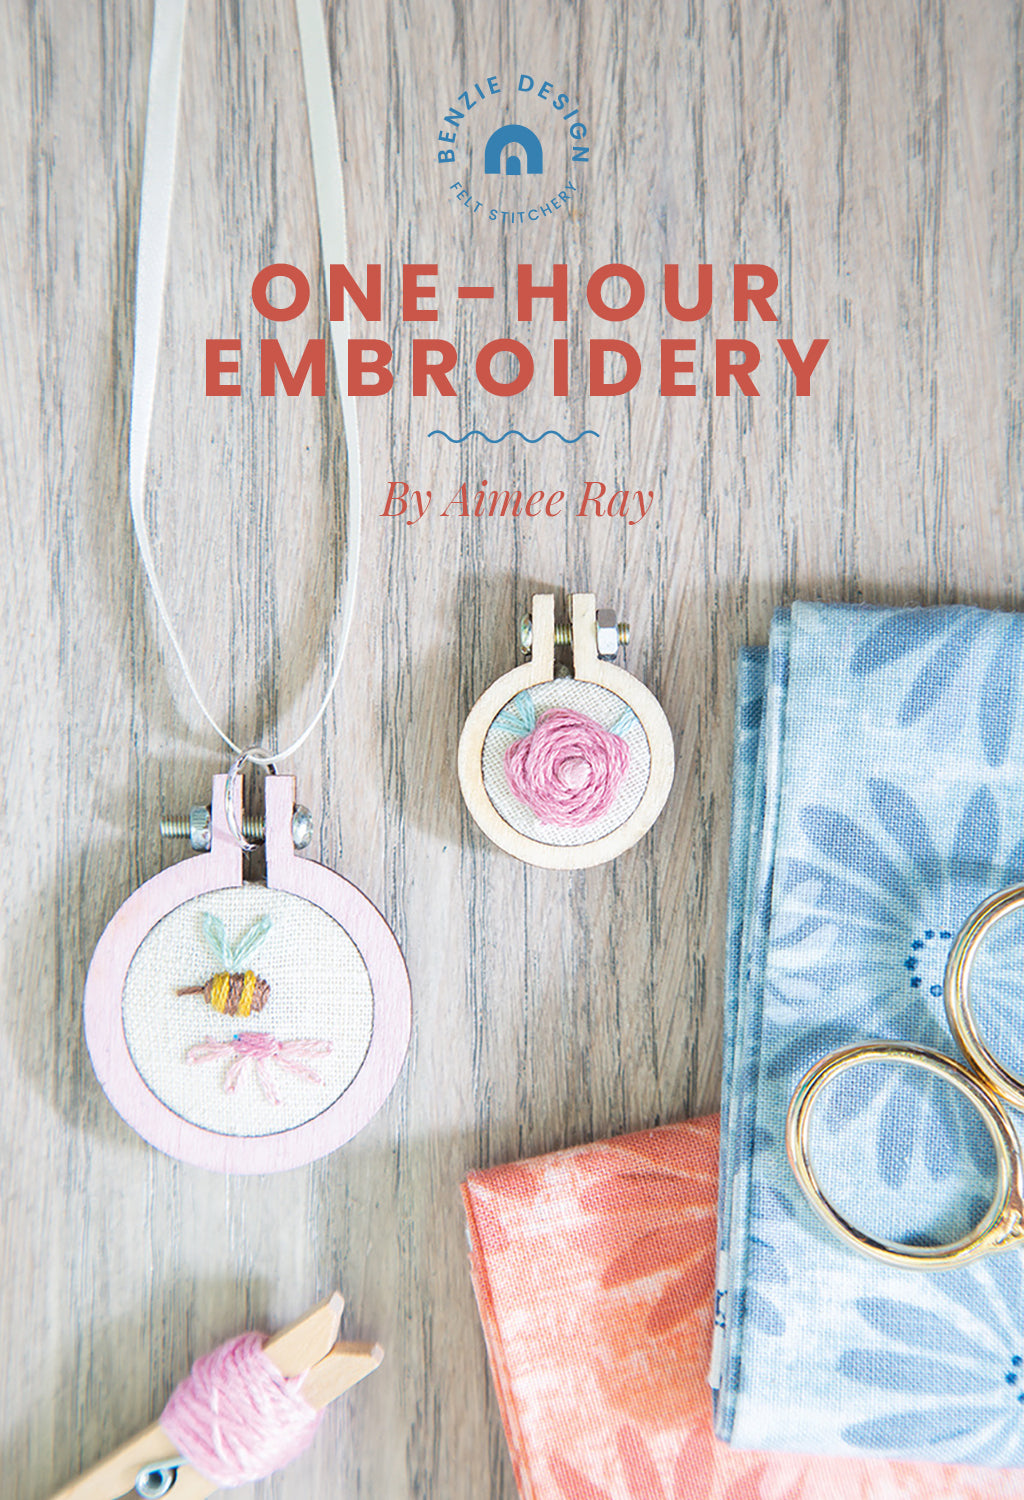 One-hour embroidery with author Aimee Ray